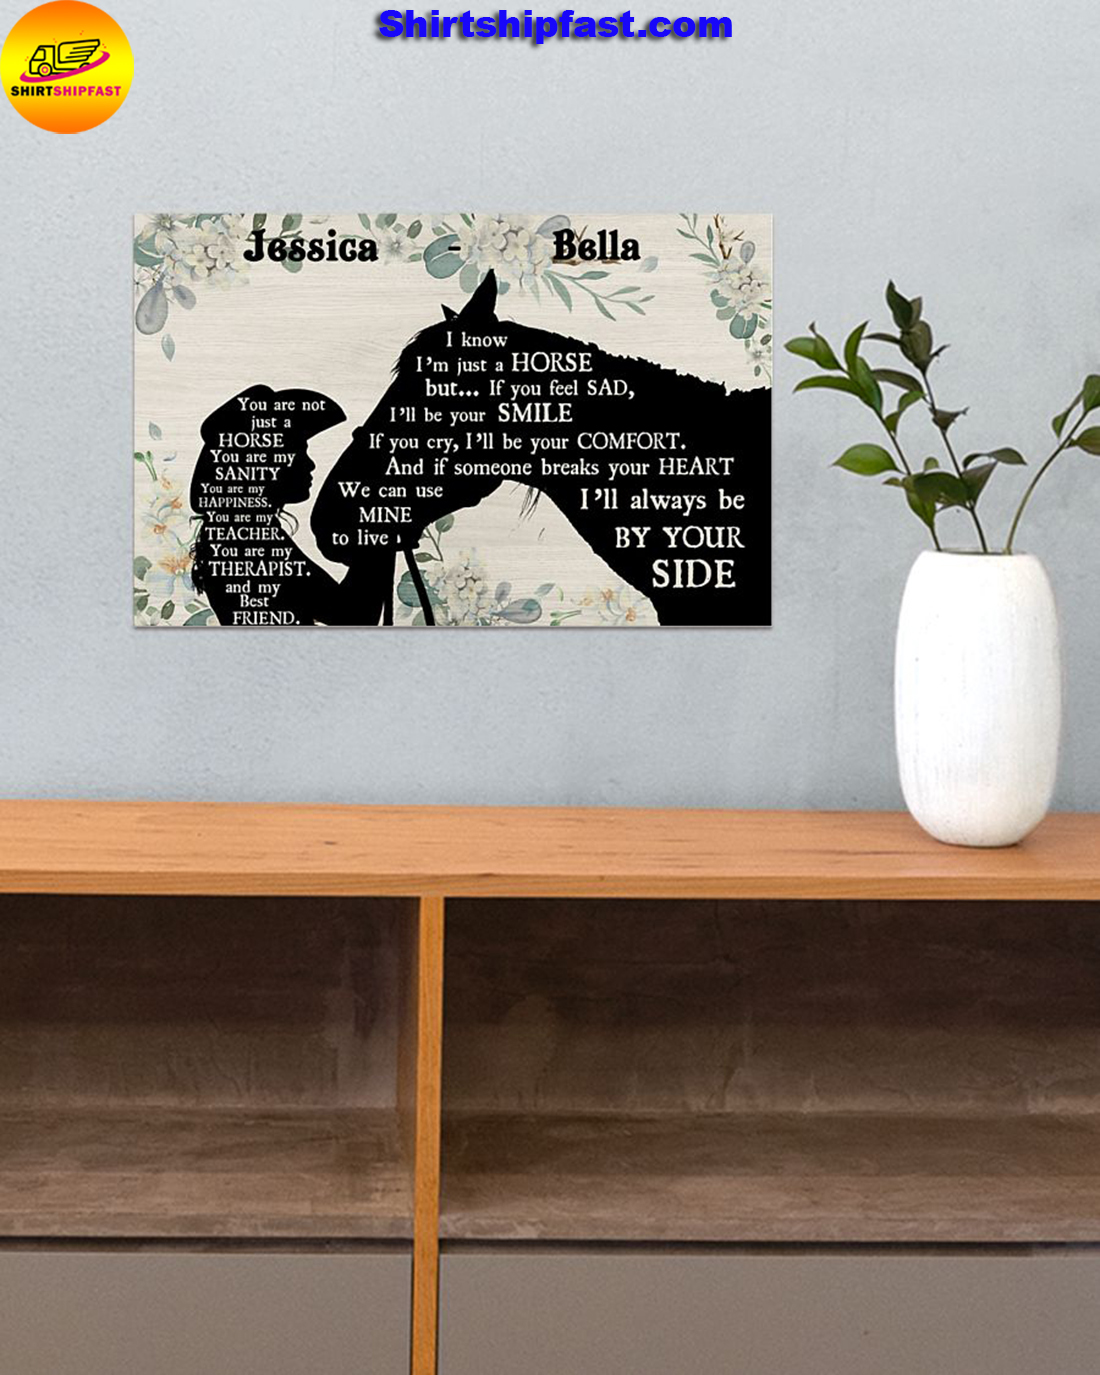 You are not just a horse personalized horse lover poster - Picture 1